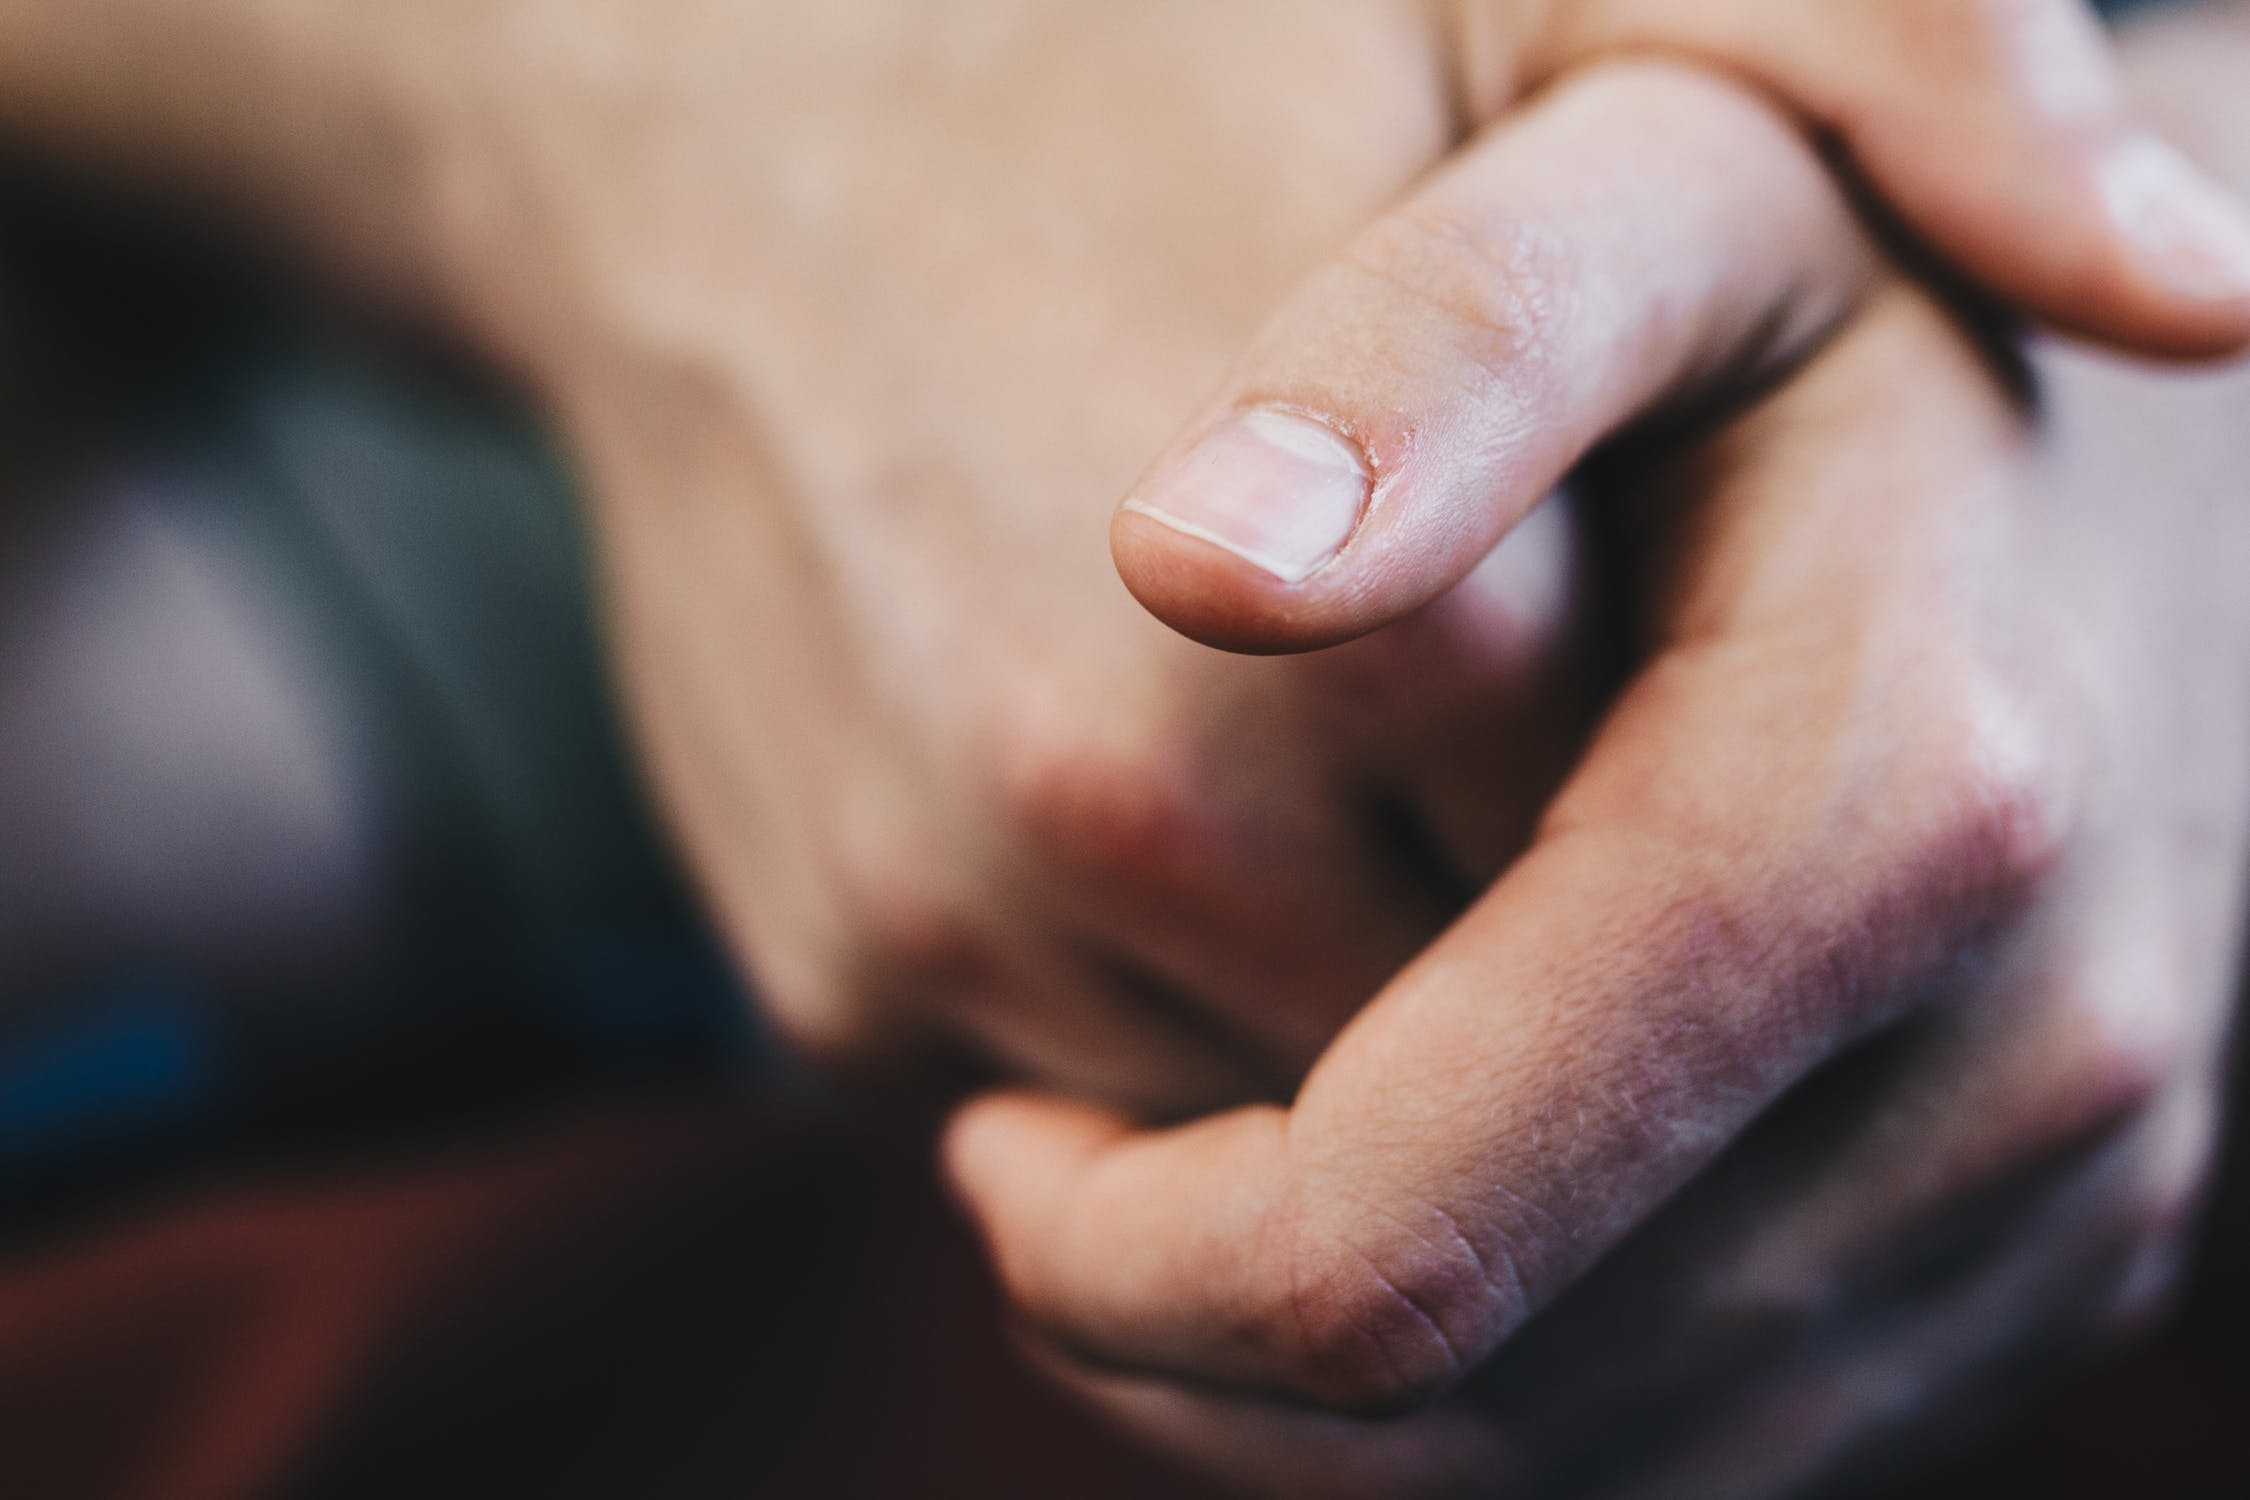 Serious hand ailments that only expert hand orthopaedics can treat